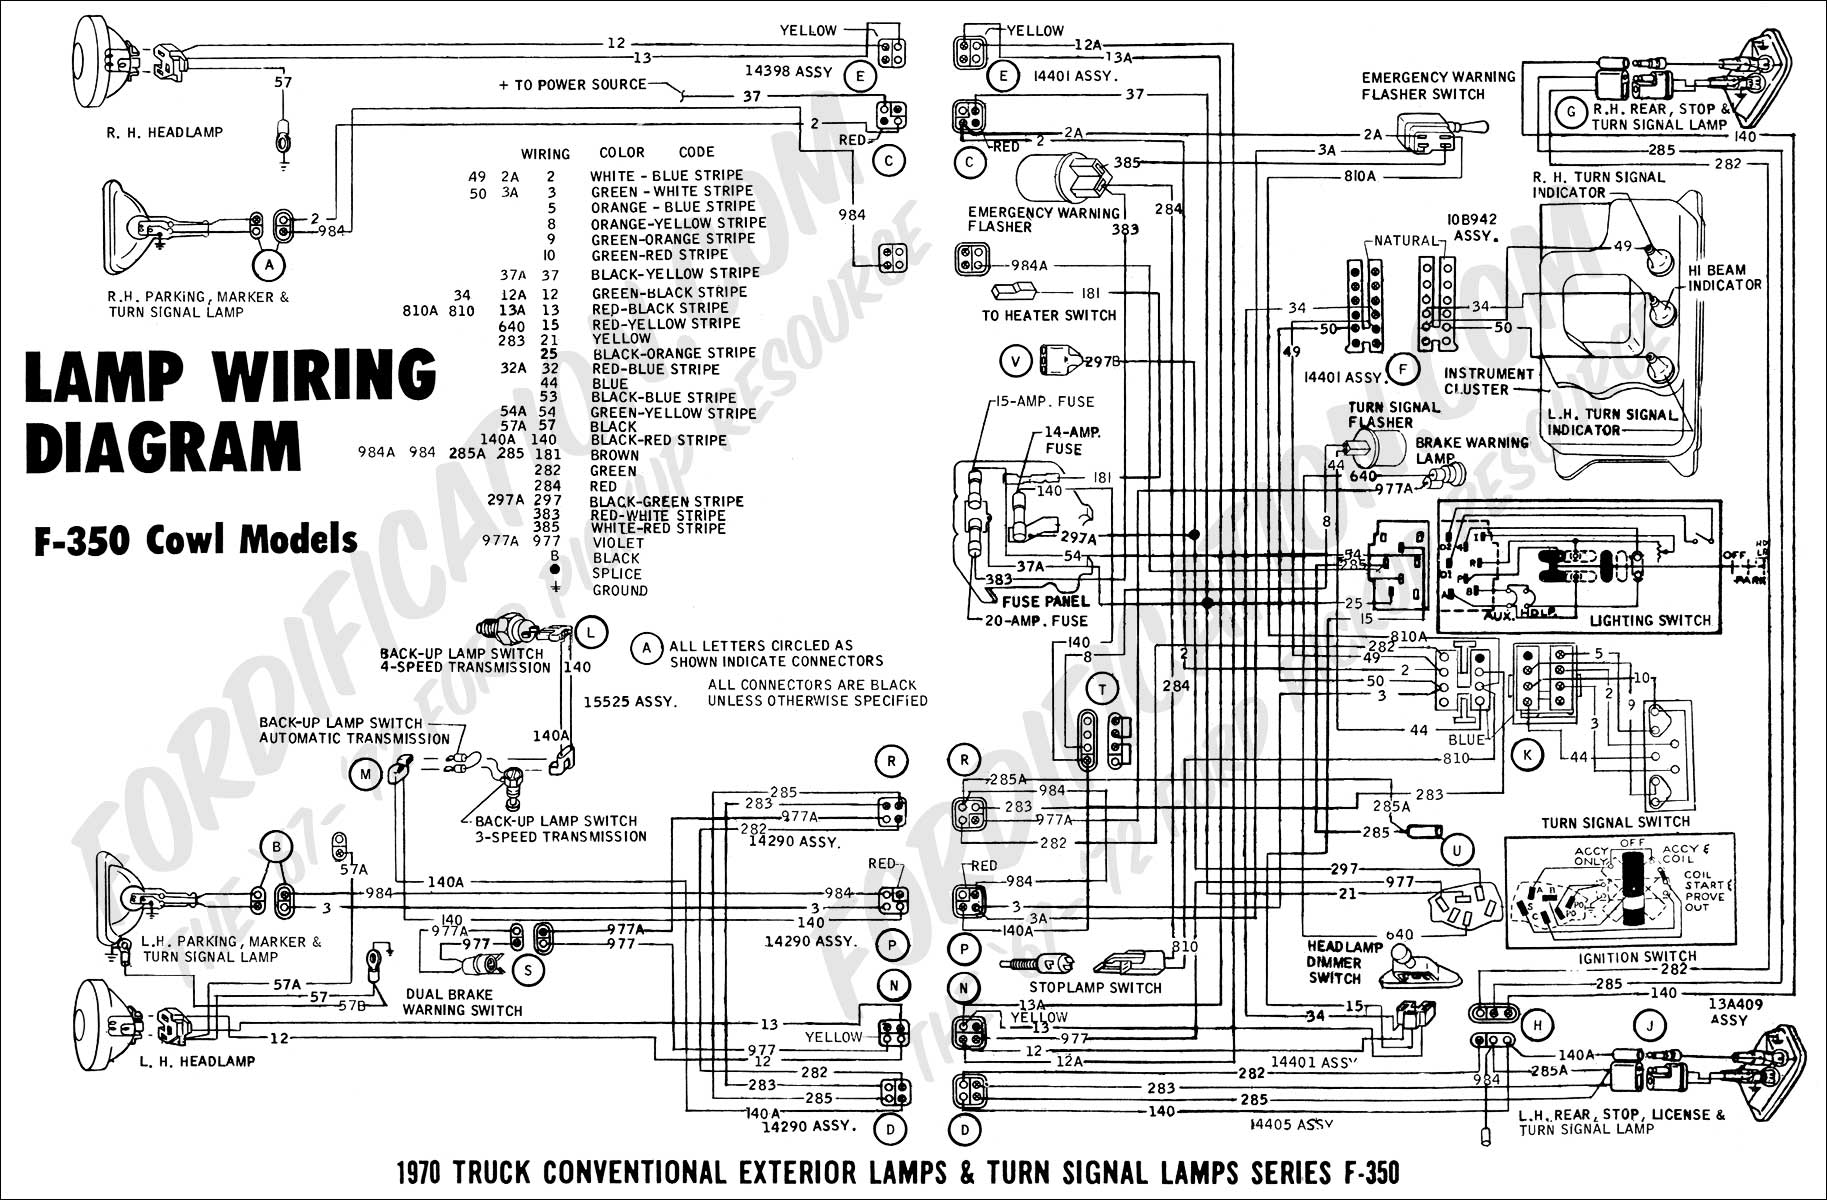 2005 Ford F750 Wiring Diagram Diagrams Honda Rancher Schema 350 Parts 2001